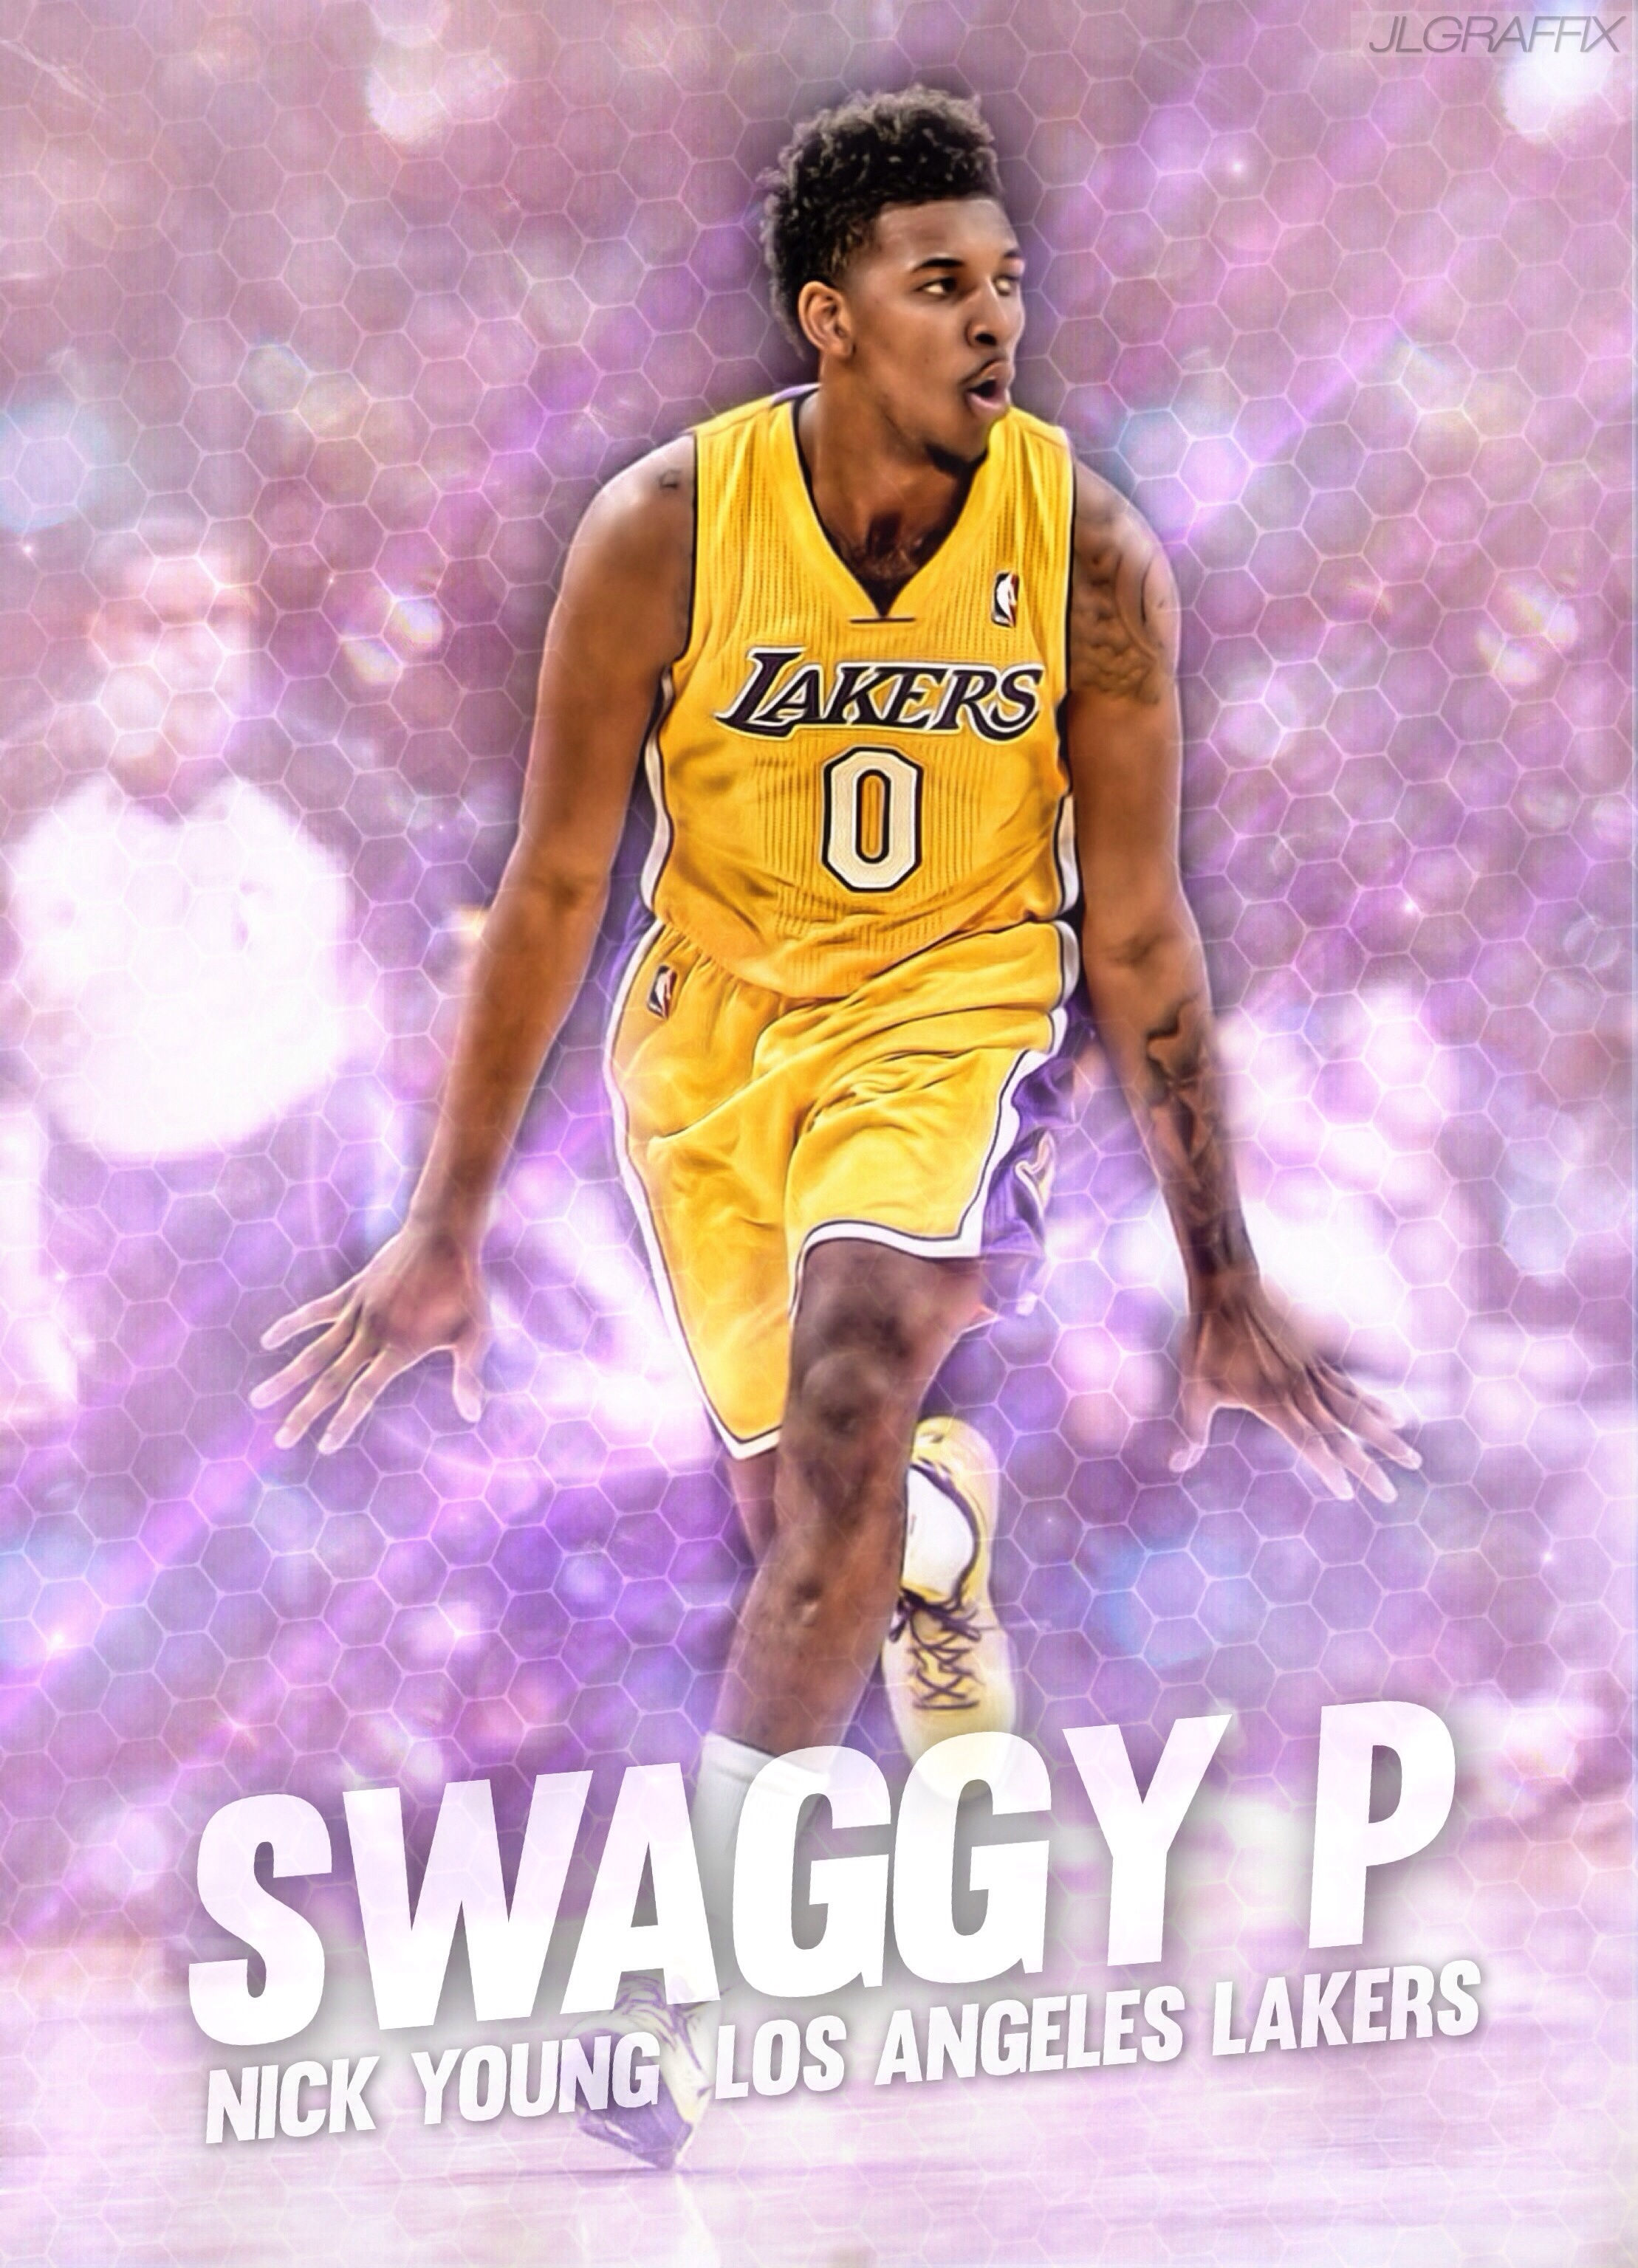 Nick Young by jlgraffix 2218x3072